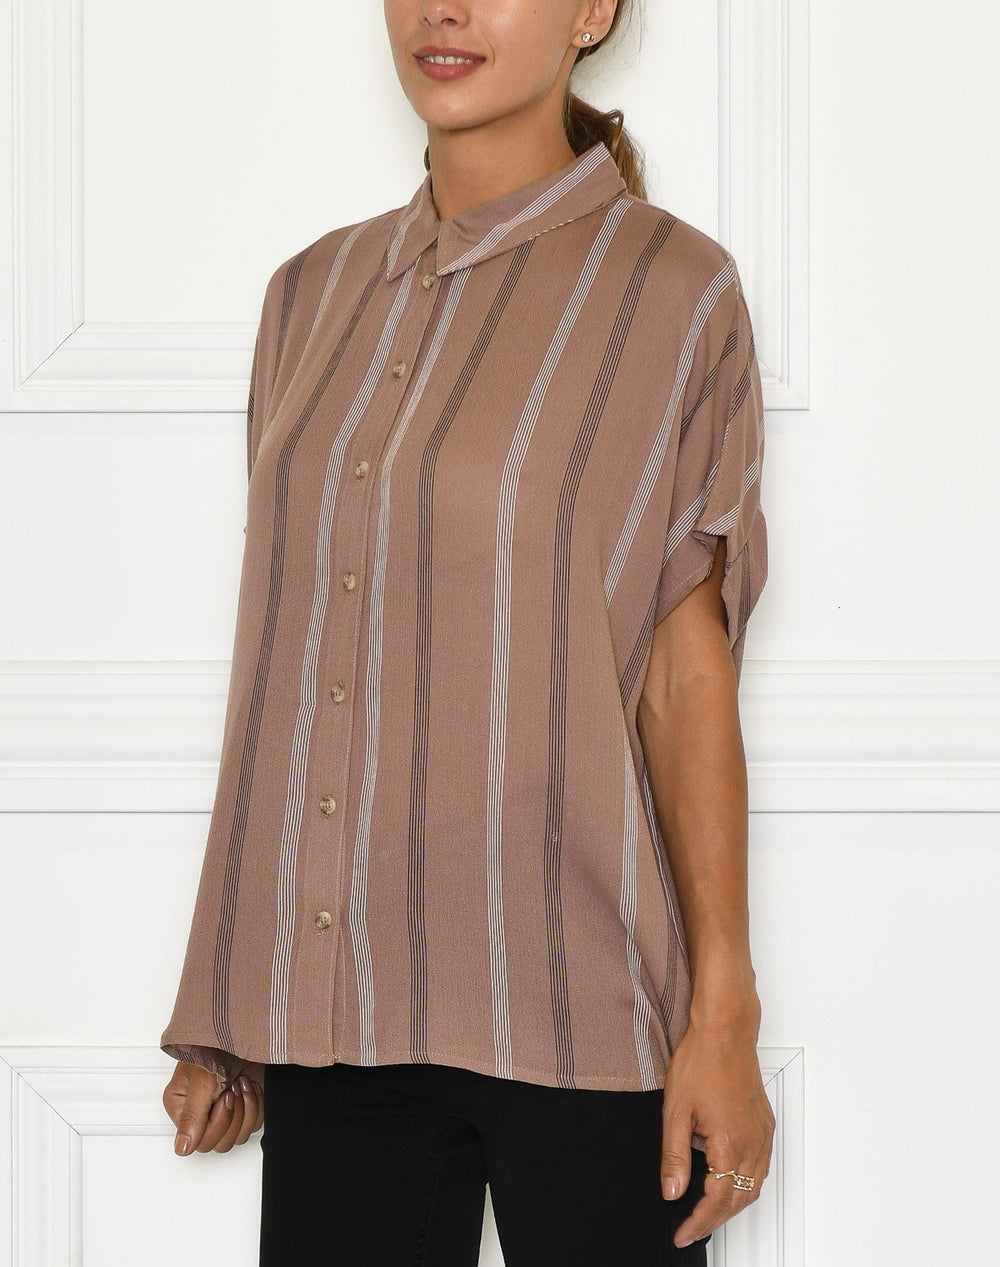 Dranella DRJaxo 2 shirt striped brownie mix - Online-Mode